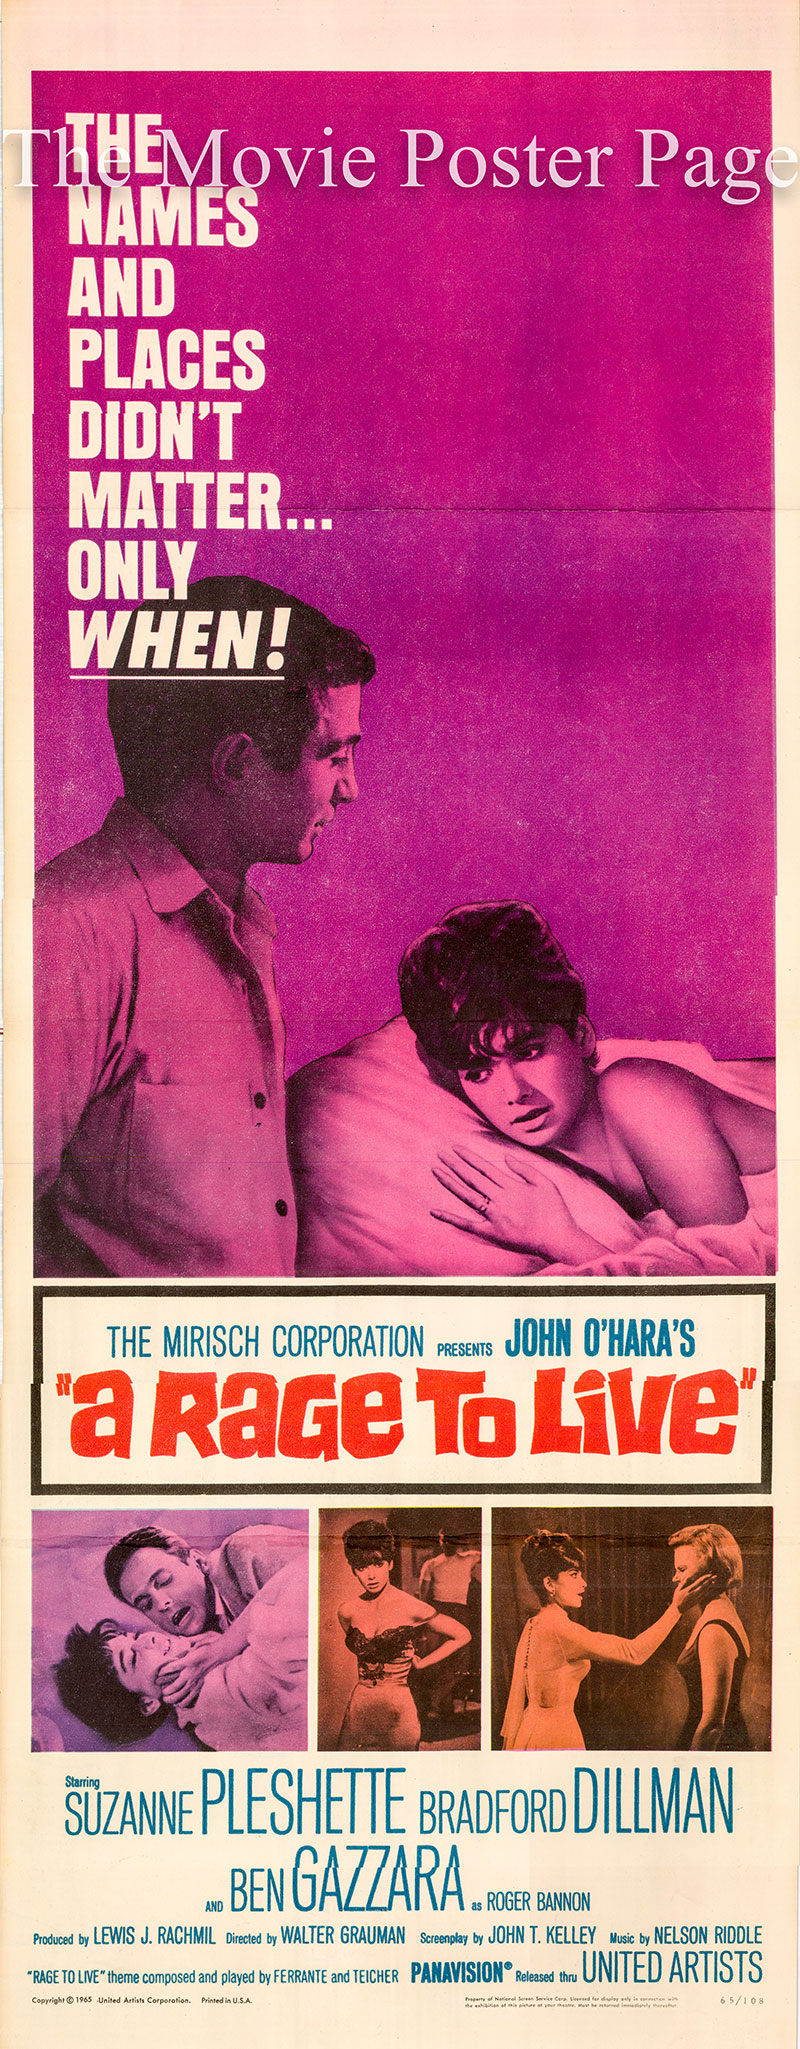 Pictured is a US insert poster for the 1965 Walter Grauman film A Rage to Live starring Suzanne Pleshette as Grace Caldwell Tate.